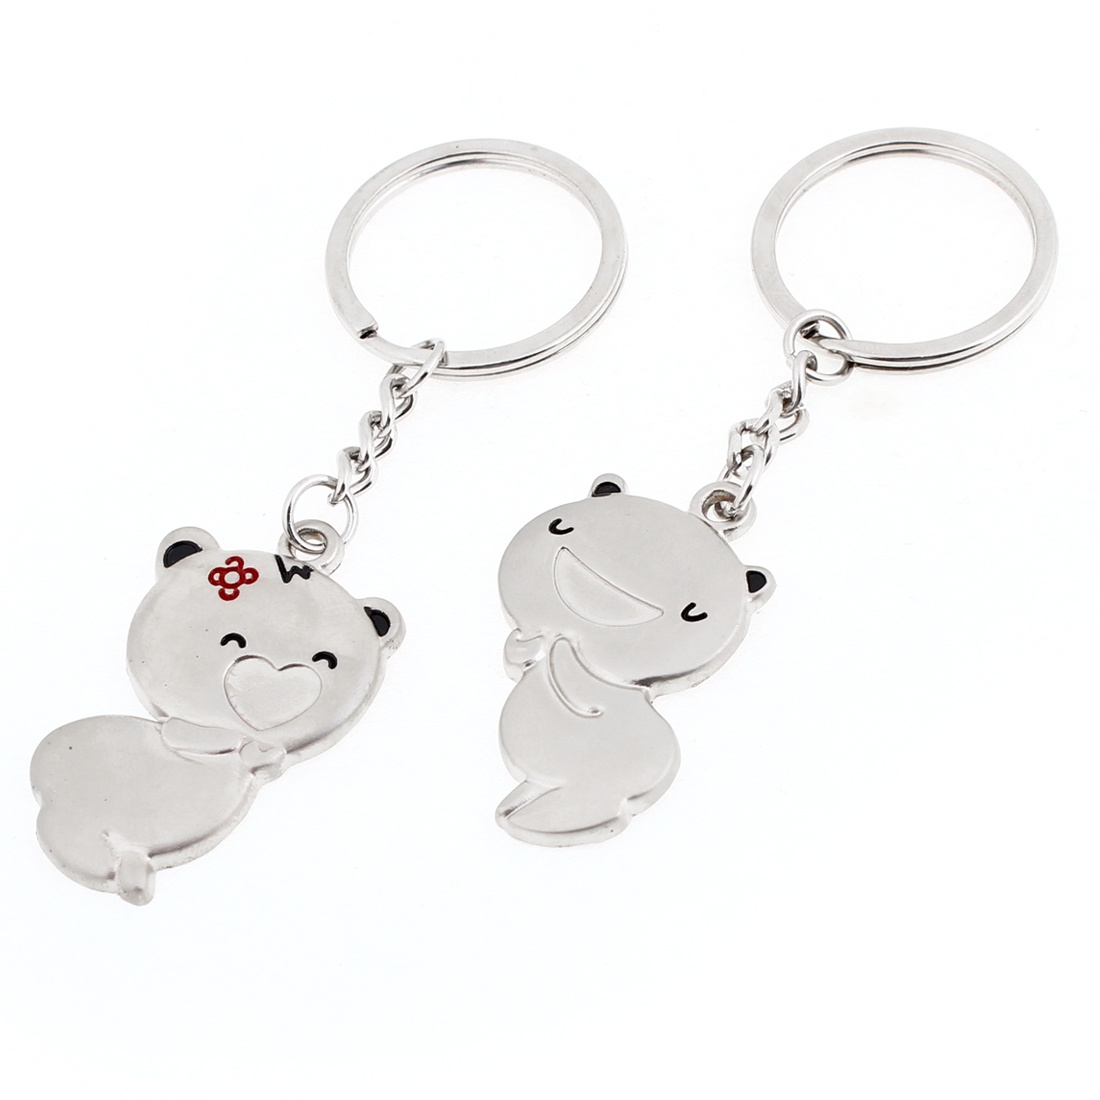 Pair Silver Tone Smile Cartoon Pig Pendant Keyrings Keychains for Lovers